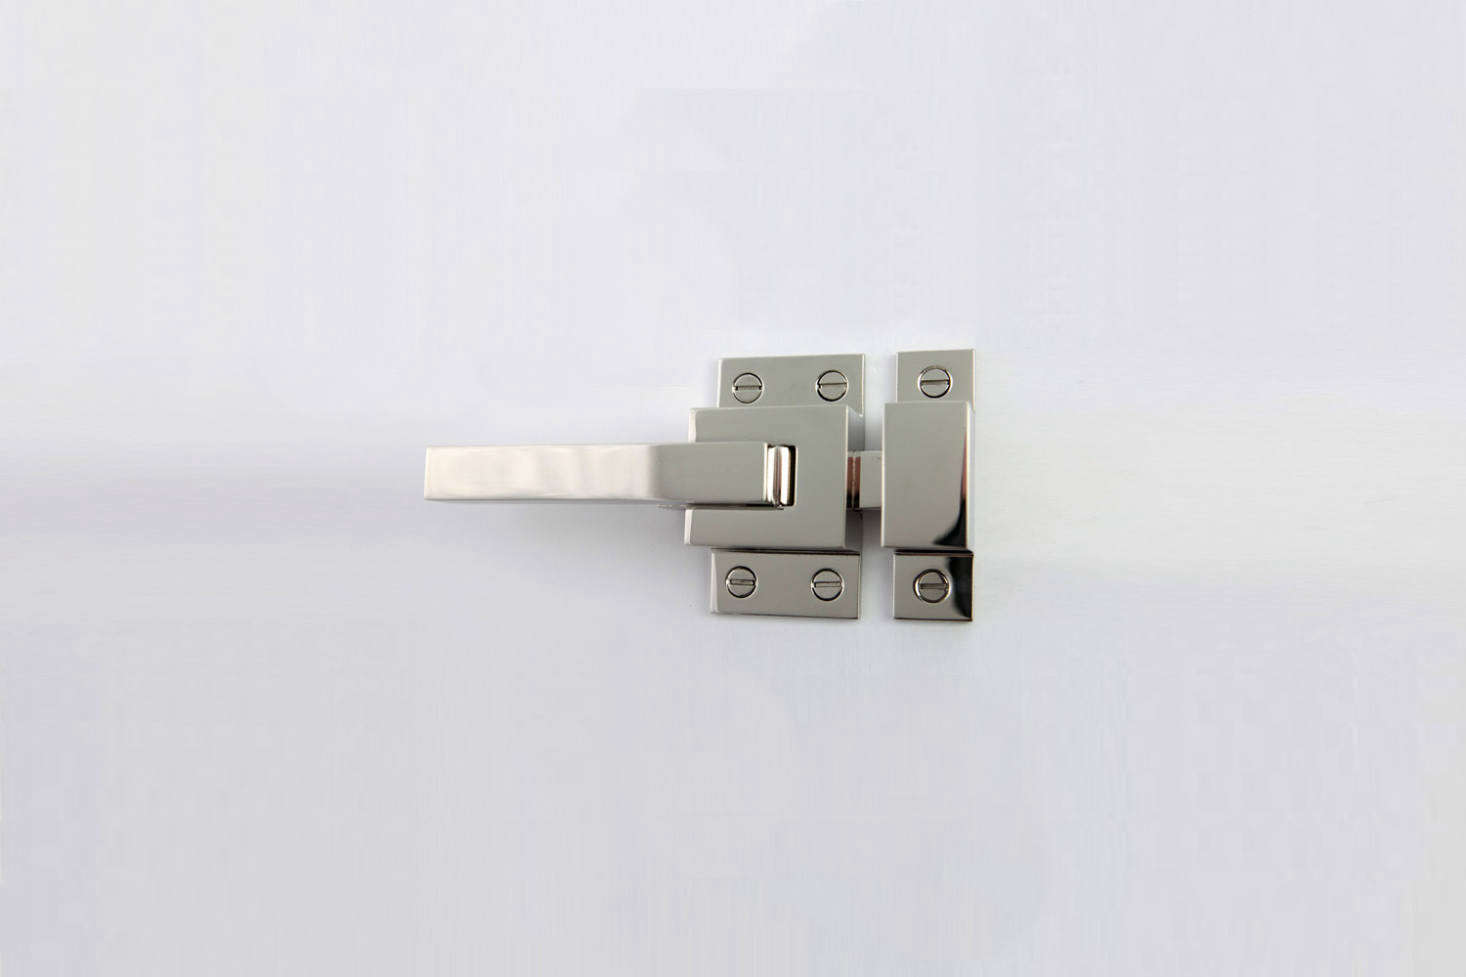 Another style from Ice Box Hinges, the Moderne Ice Box Latch is a boxy, modern rendition of the traditional latch style. Contact Ice Box Hinges for price and ordering information.